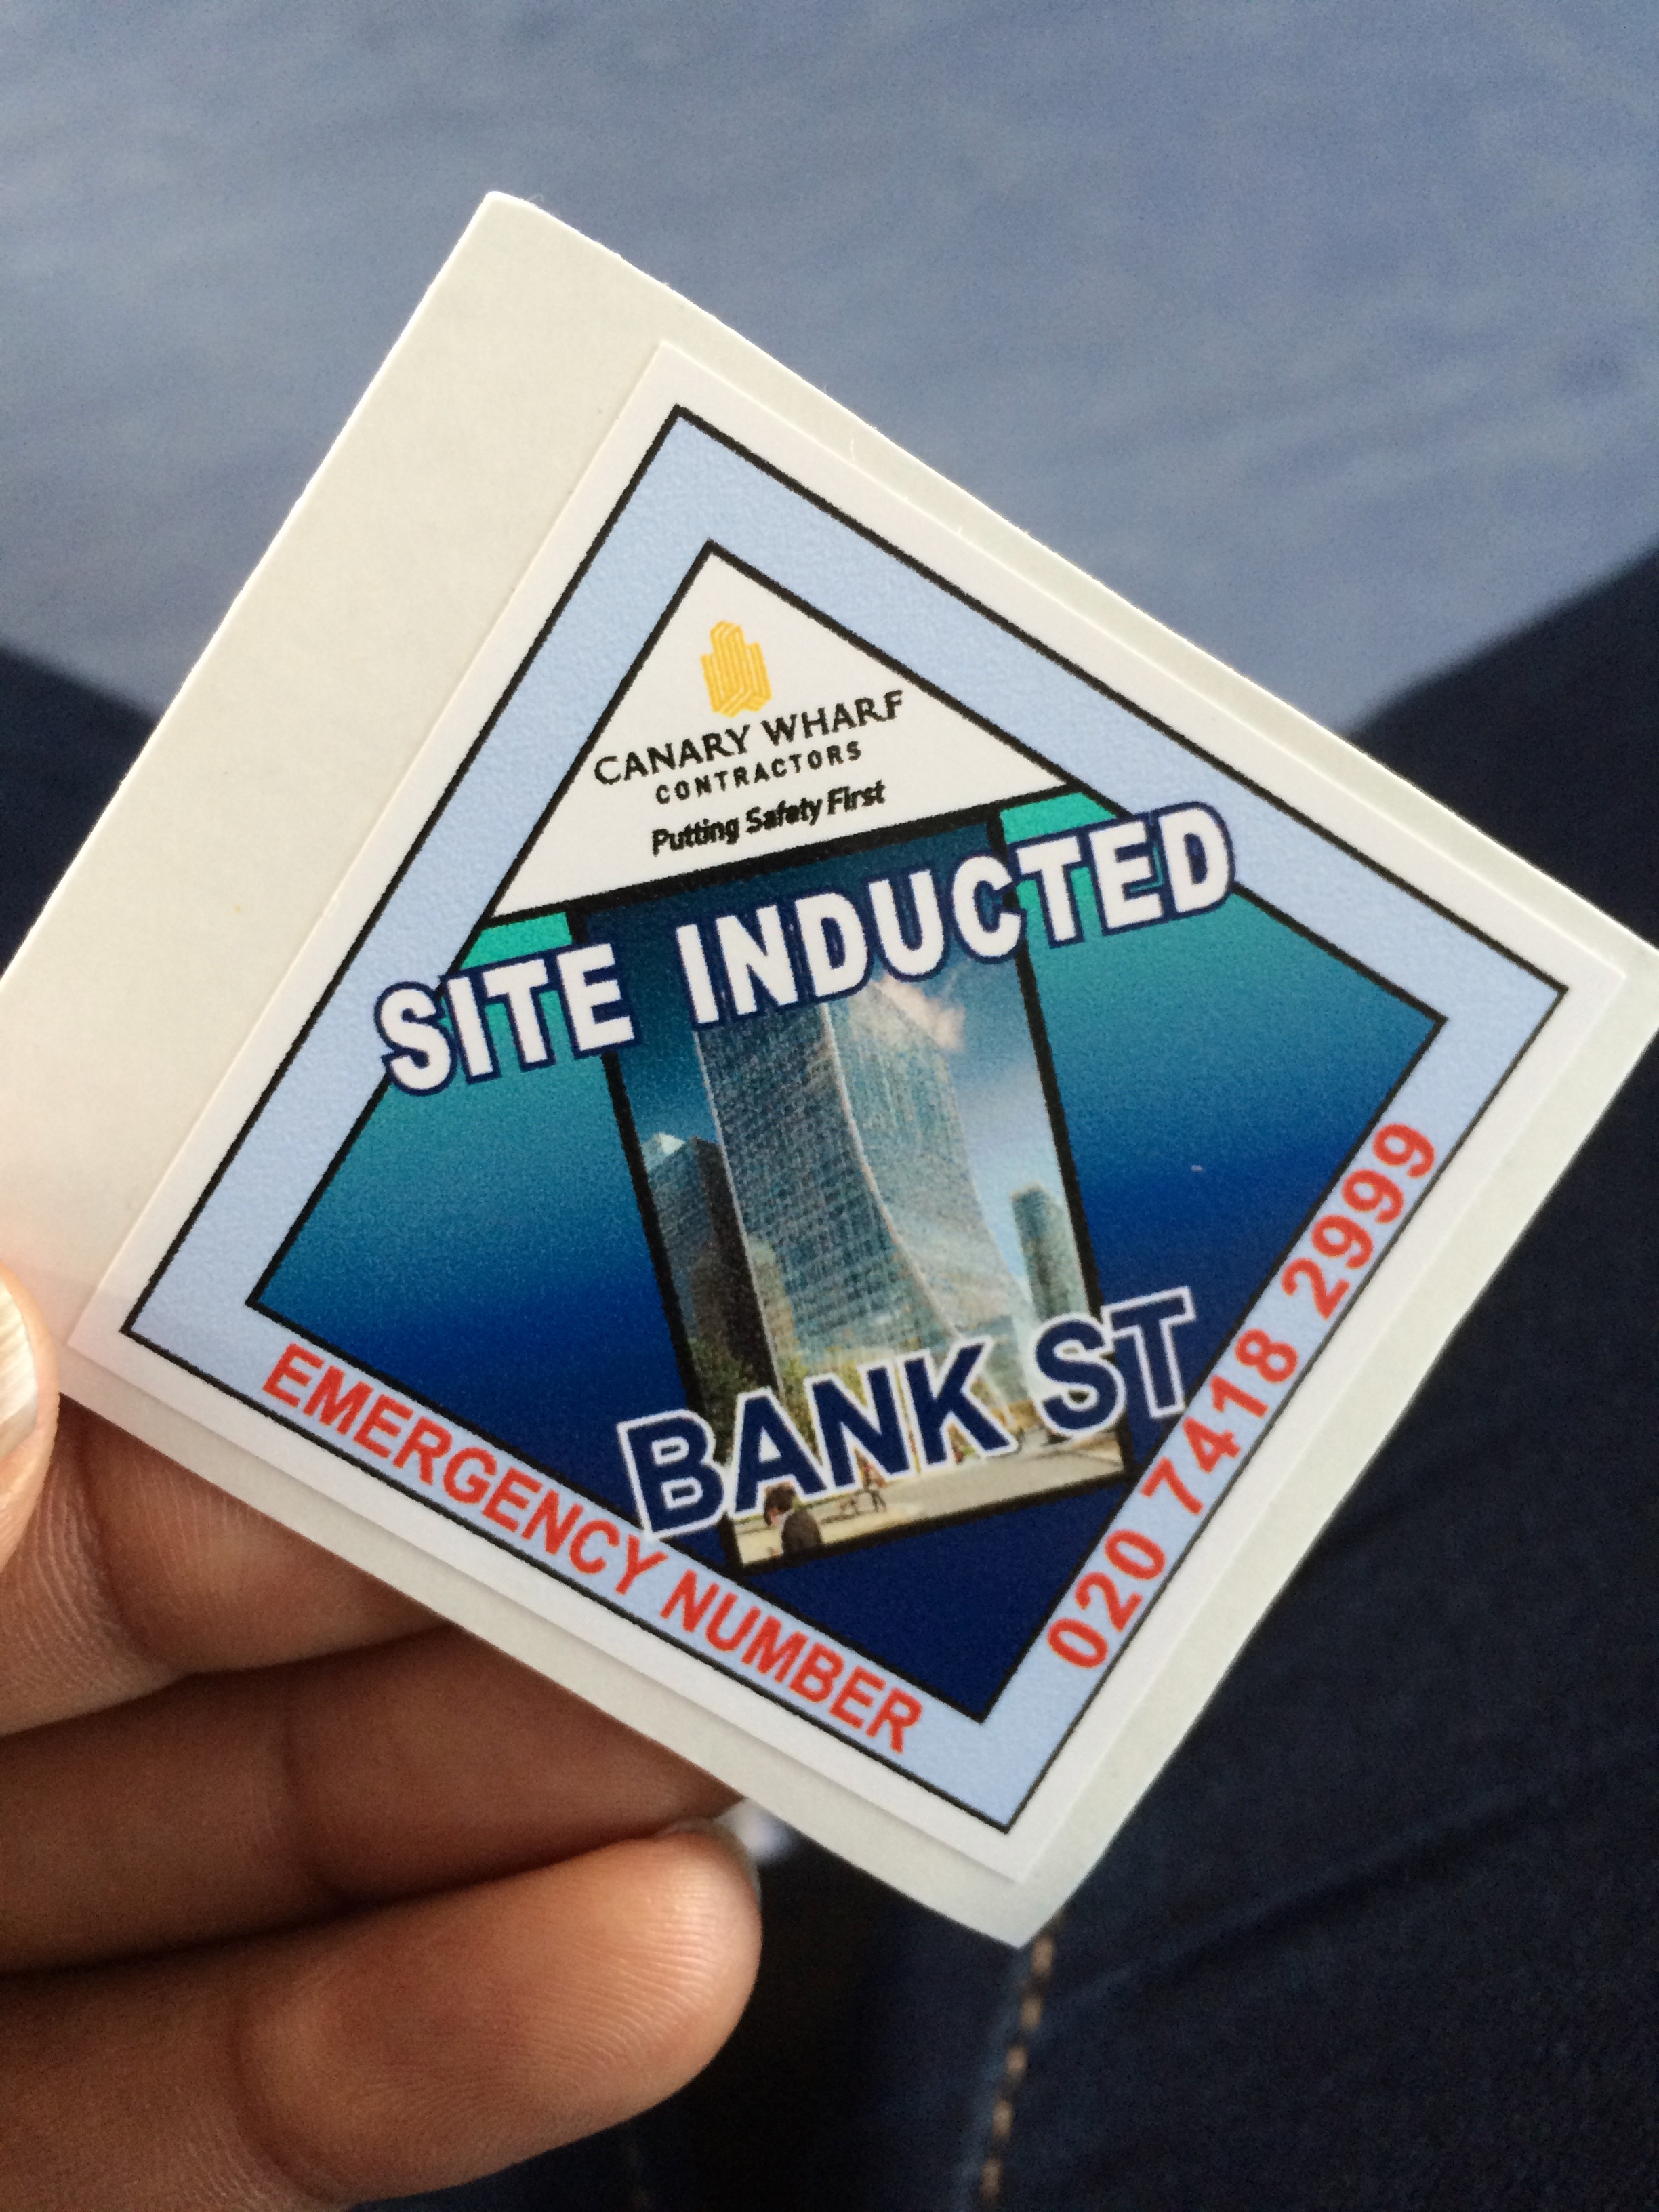 Construction site inducted